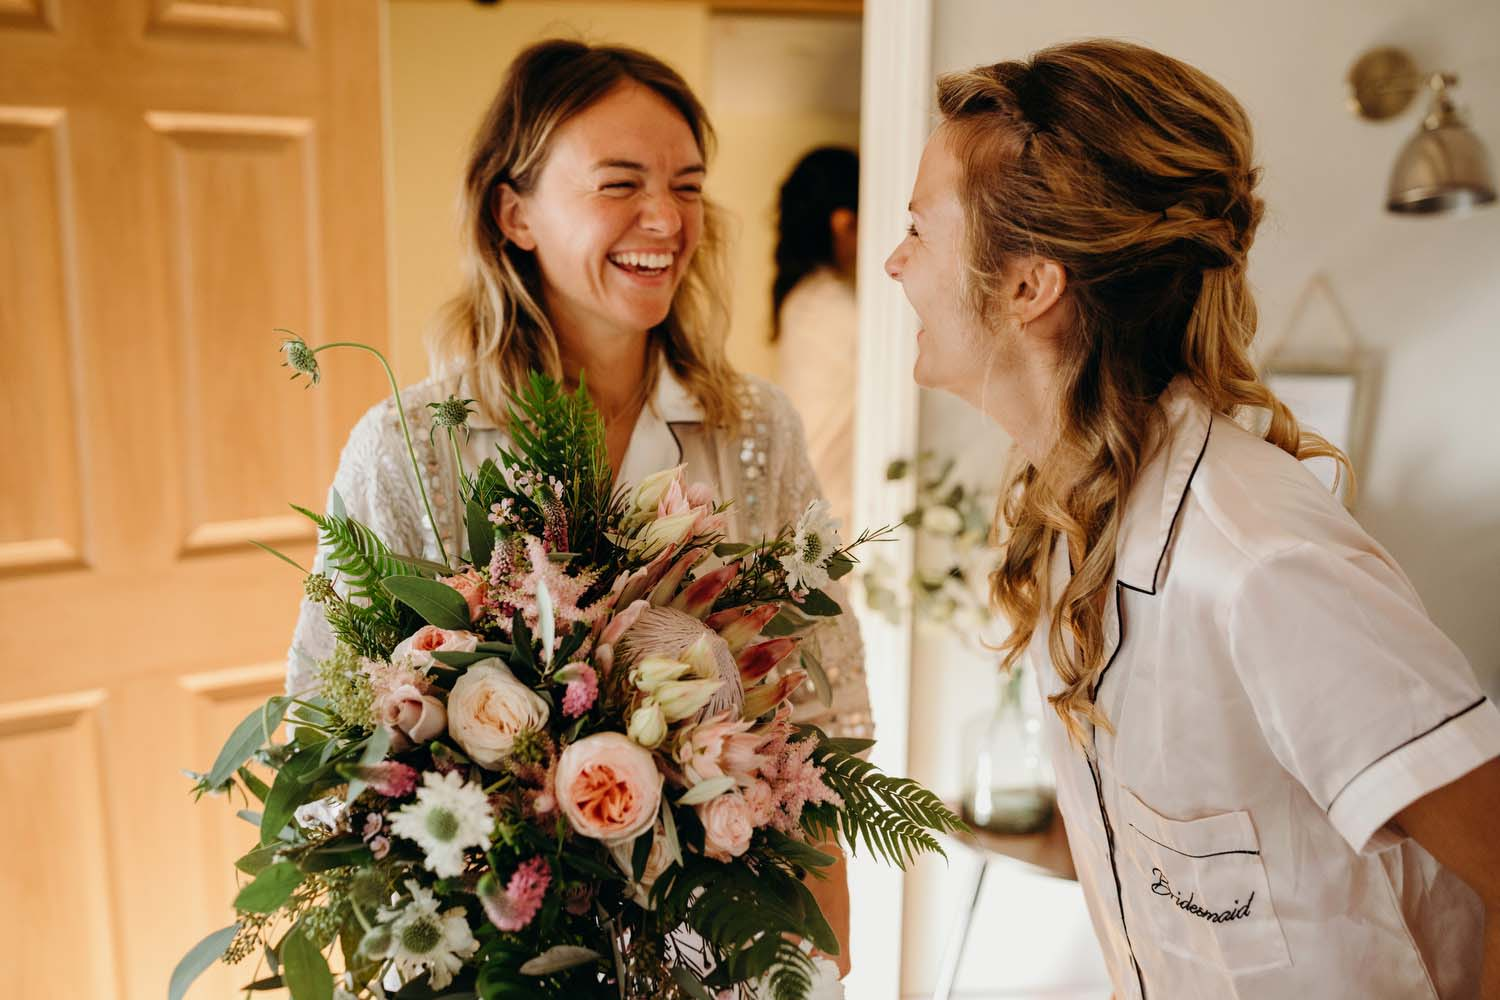 Bride laughing with Wedding bouquet